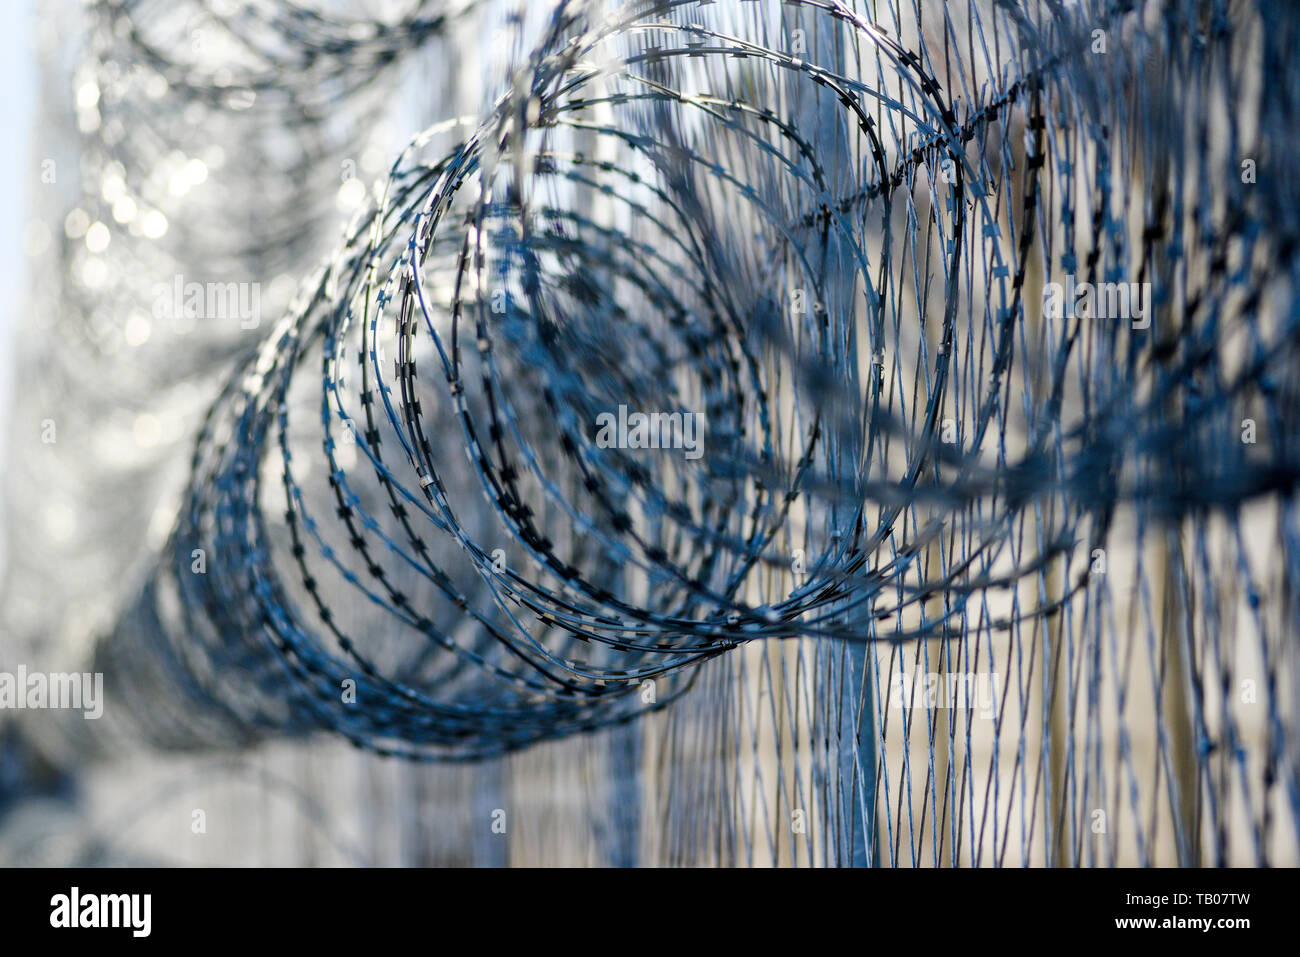 Barbed wire in prison, protecting prisoners from escaping. Stock Photo